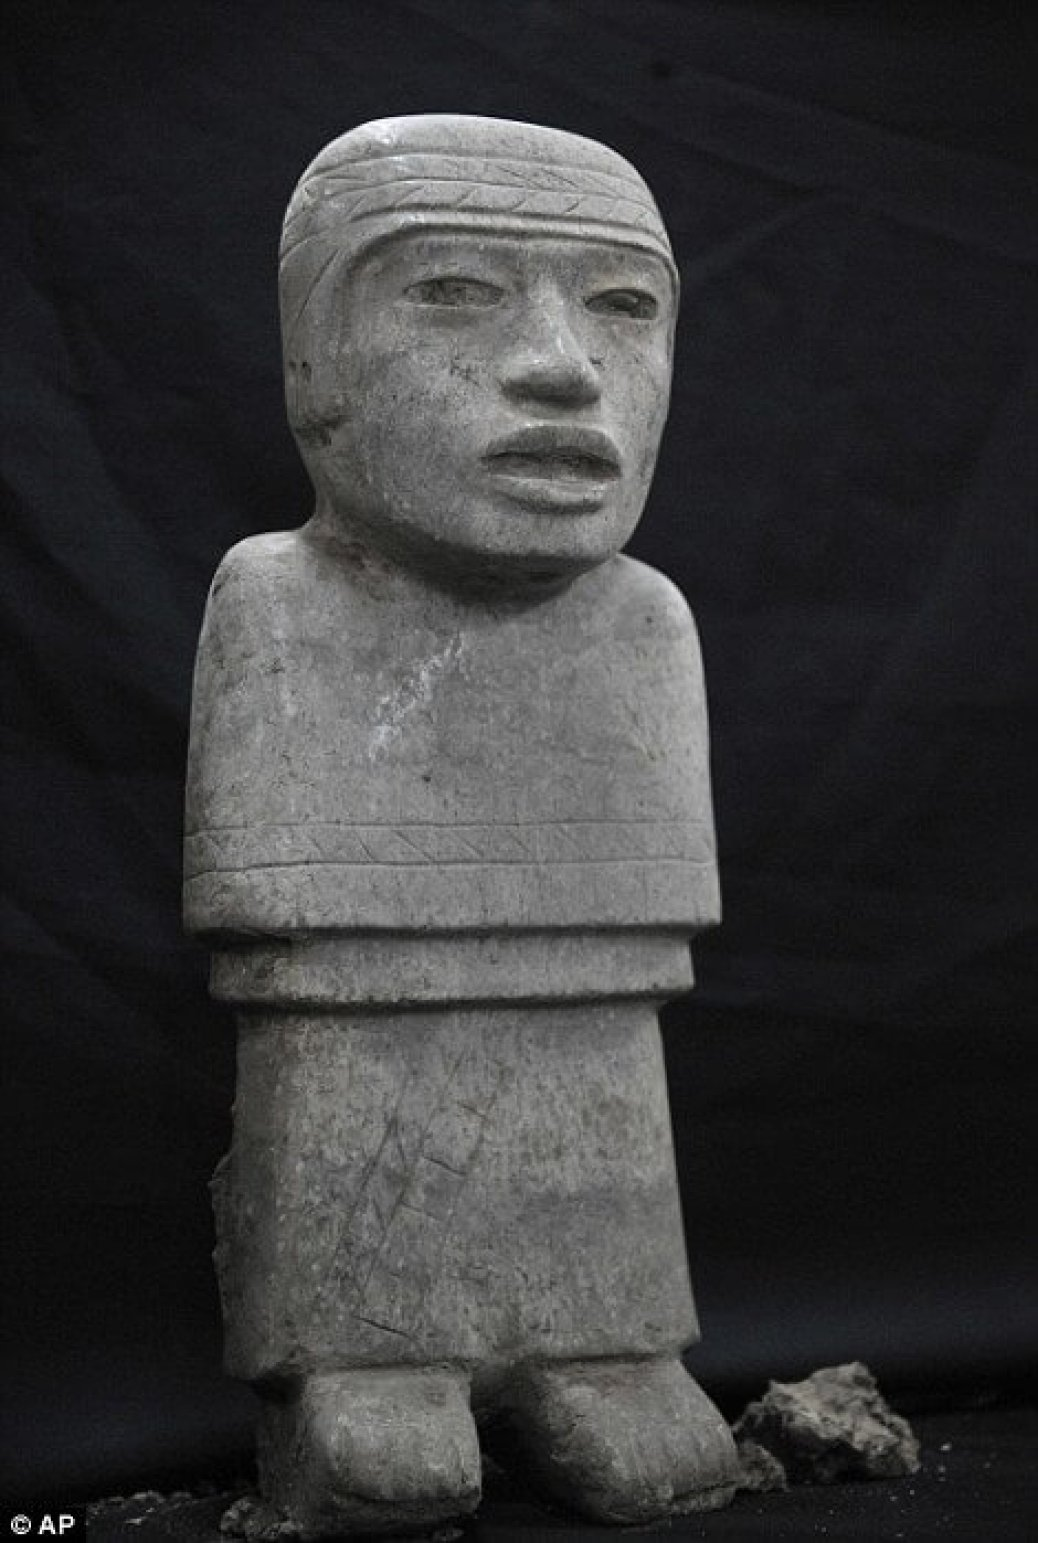 """Handout picture released by the National Institute of Anthropology and History (INAH in Spanish) showing a stone sculpture found at the Temple of the Feathered Serpent (Serpiente Emplumada) at the Teotihuacan complex in Mexico City, taken on October 25, 2014. Archaeologist Sergio Gomez announced in a press conference in Mexico City on October 29, 2014 that new discoveries were made recently at the temple. The discovered offering is located at 103 metres from the entrance of the temple and contains thousands of items including 4 stone sculptures and jade ornaments. AFP PHOTO/INAH --- RESTRICTED TO EDITORIAL USE - MANDATORY CREDIT """"AFP PHOTO /INAH"""" - NO MARKETING NO ADVERTISING CAMPAIGNS - DISTRIBUTED AS A SERVICE TO CLIENTS--/AFP/Getty Images"""